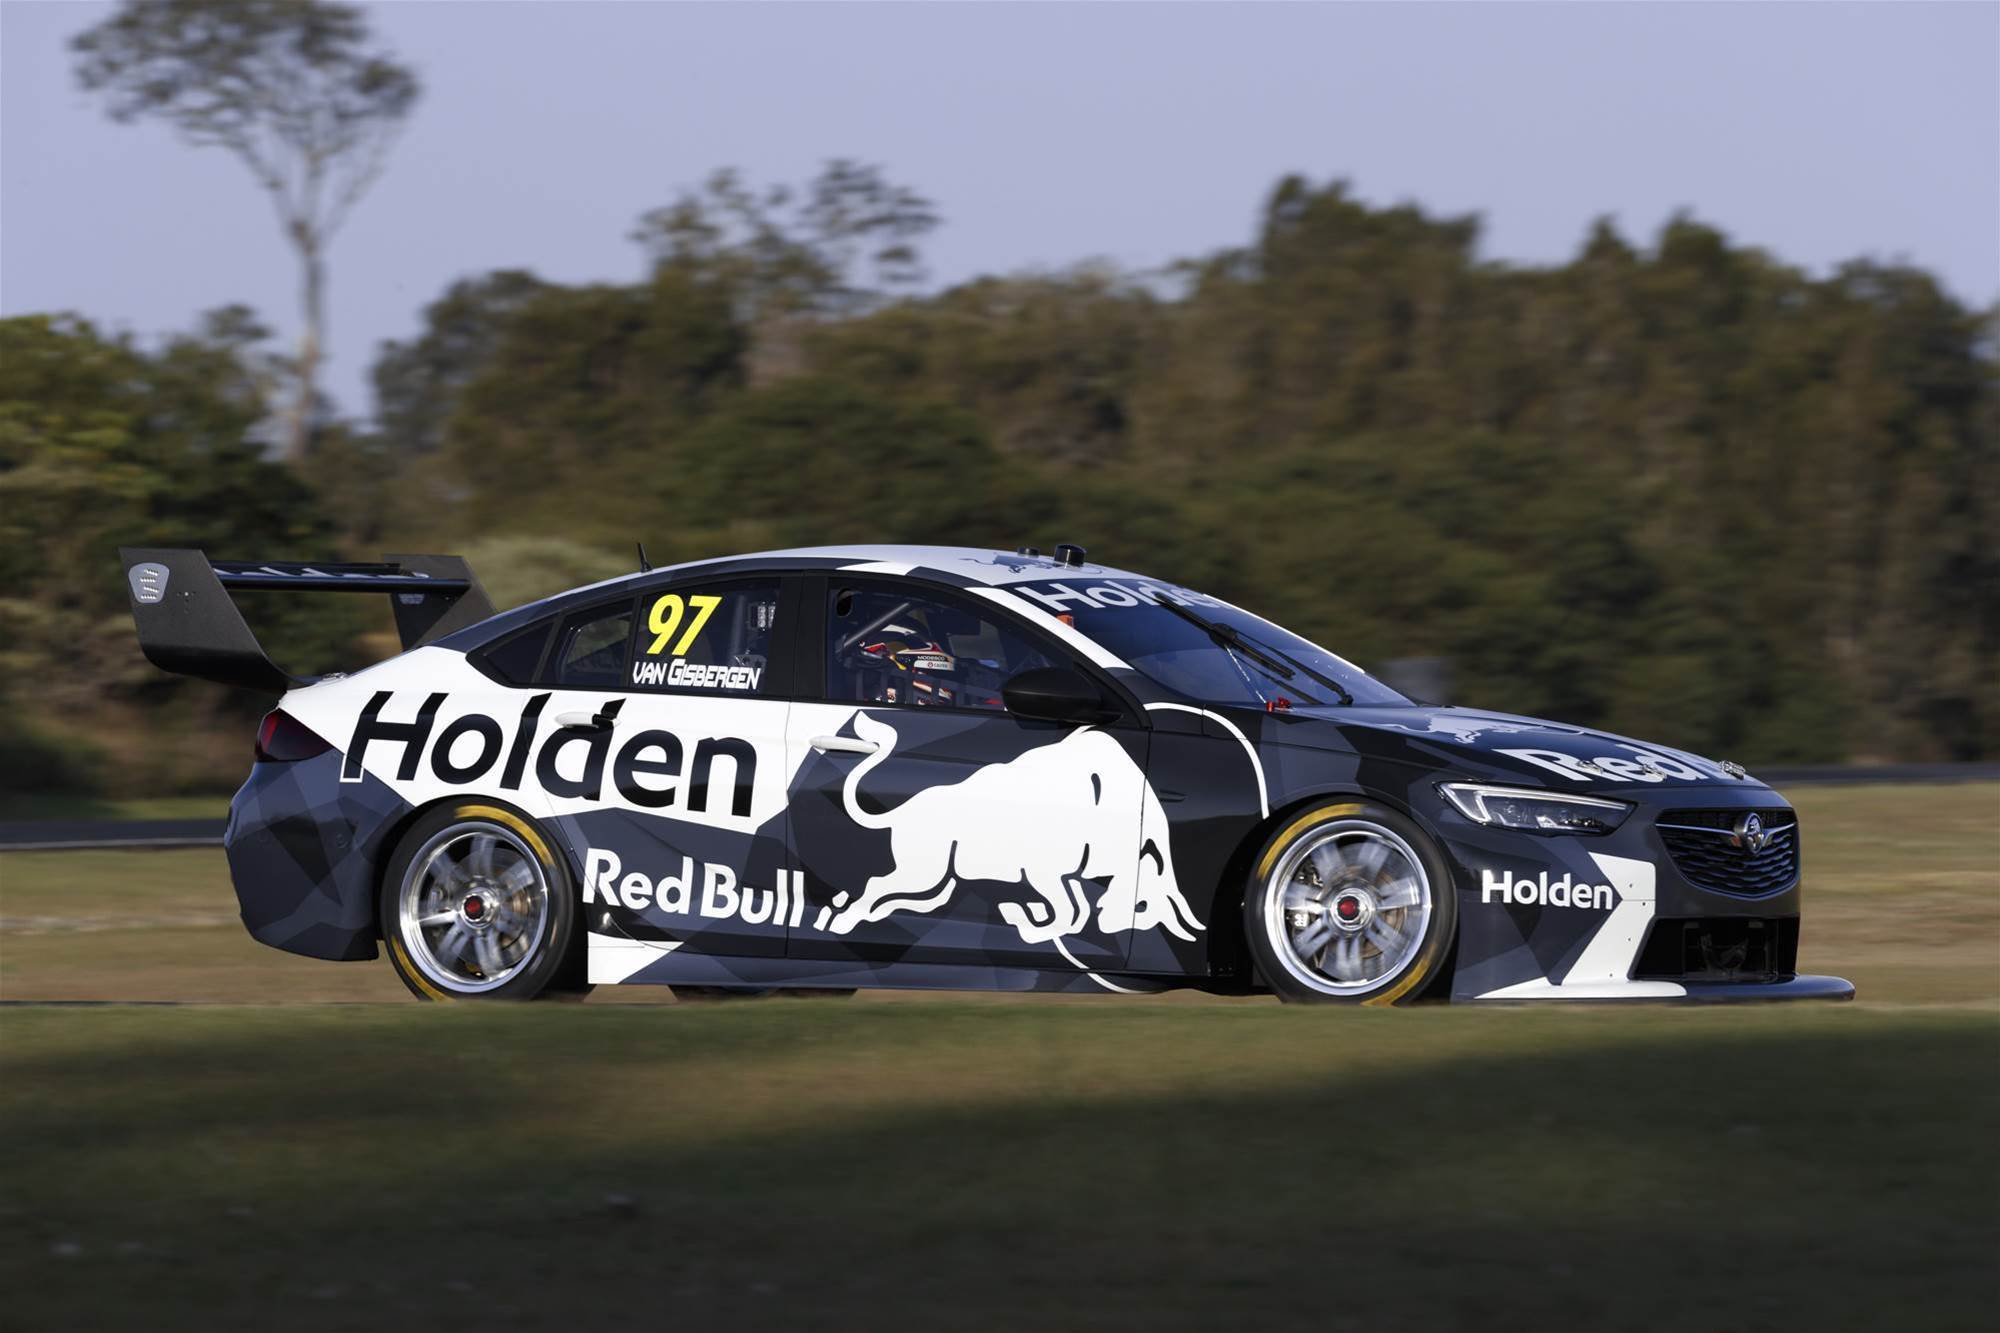 First laps for New Holden Supercar